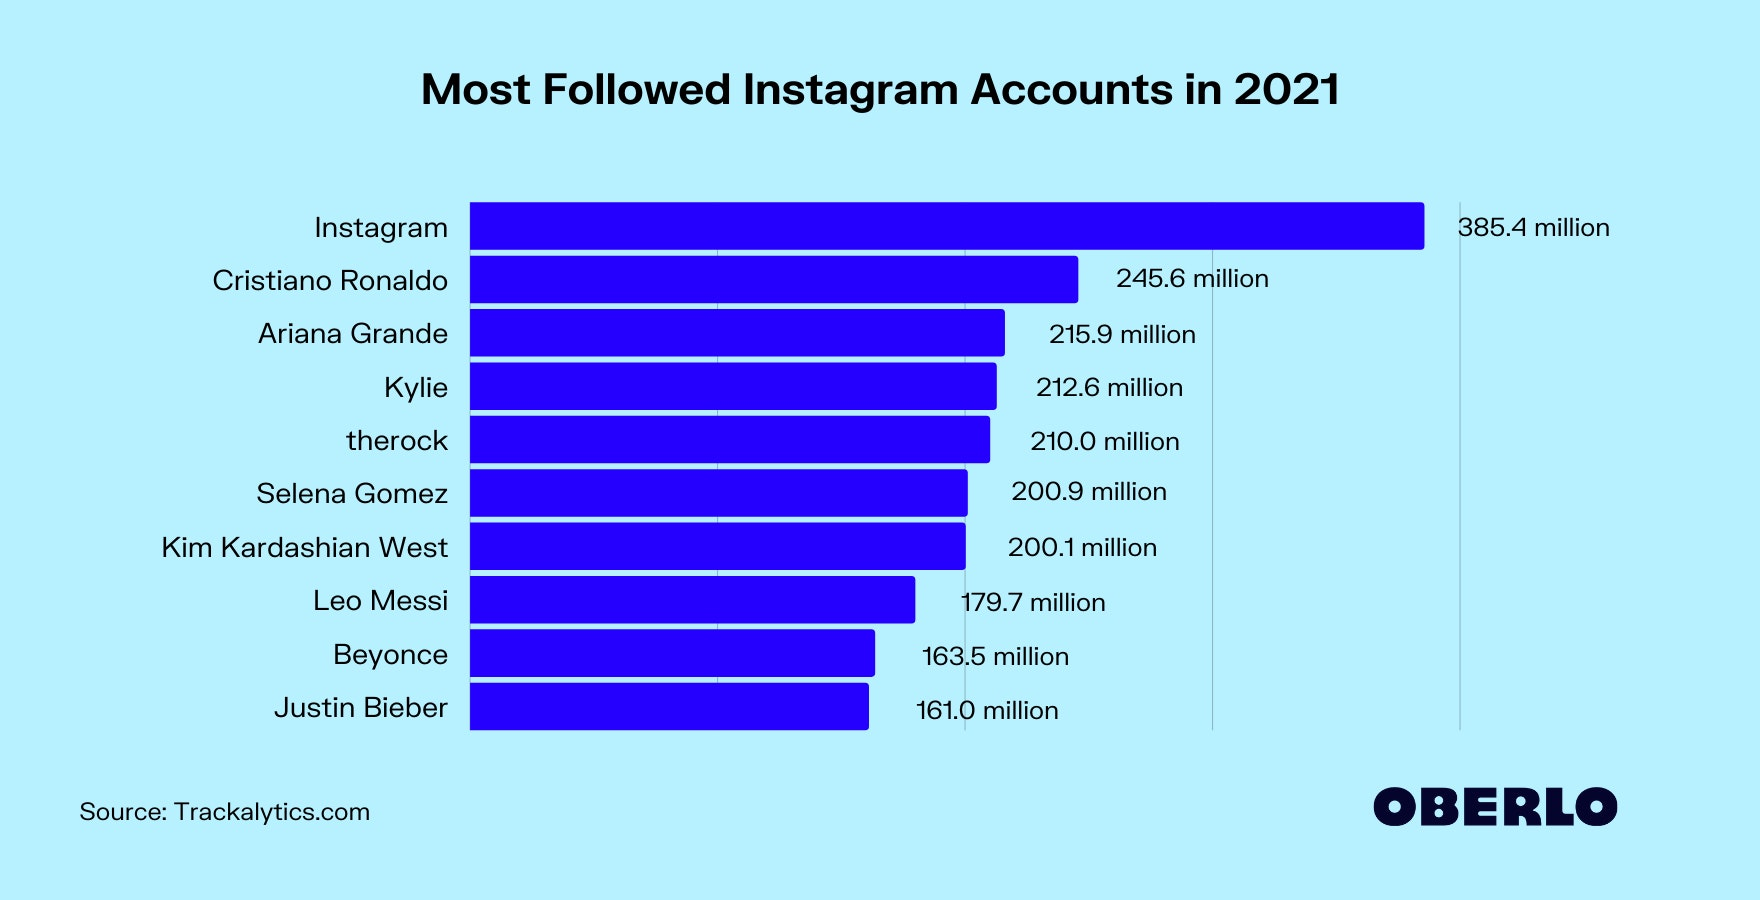 Who Has the Most Followers on Instagram in 2021?